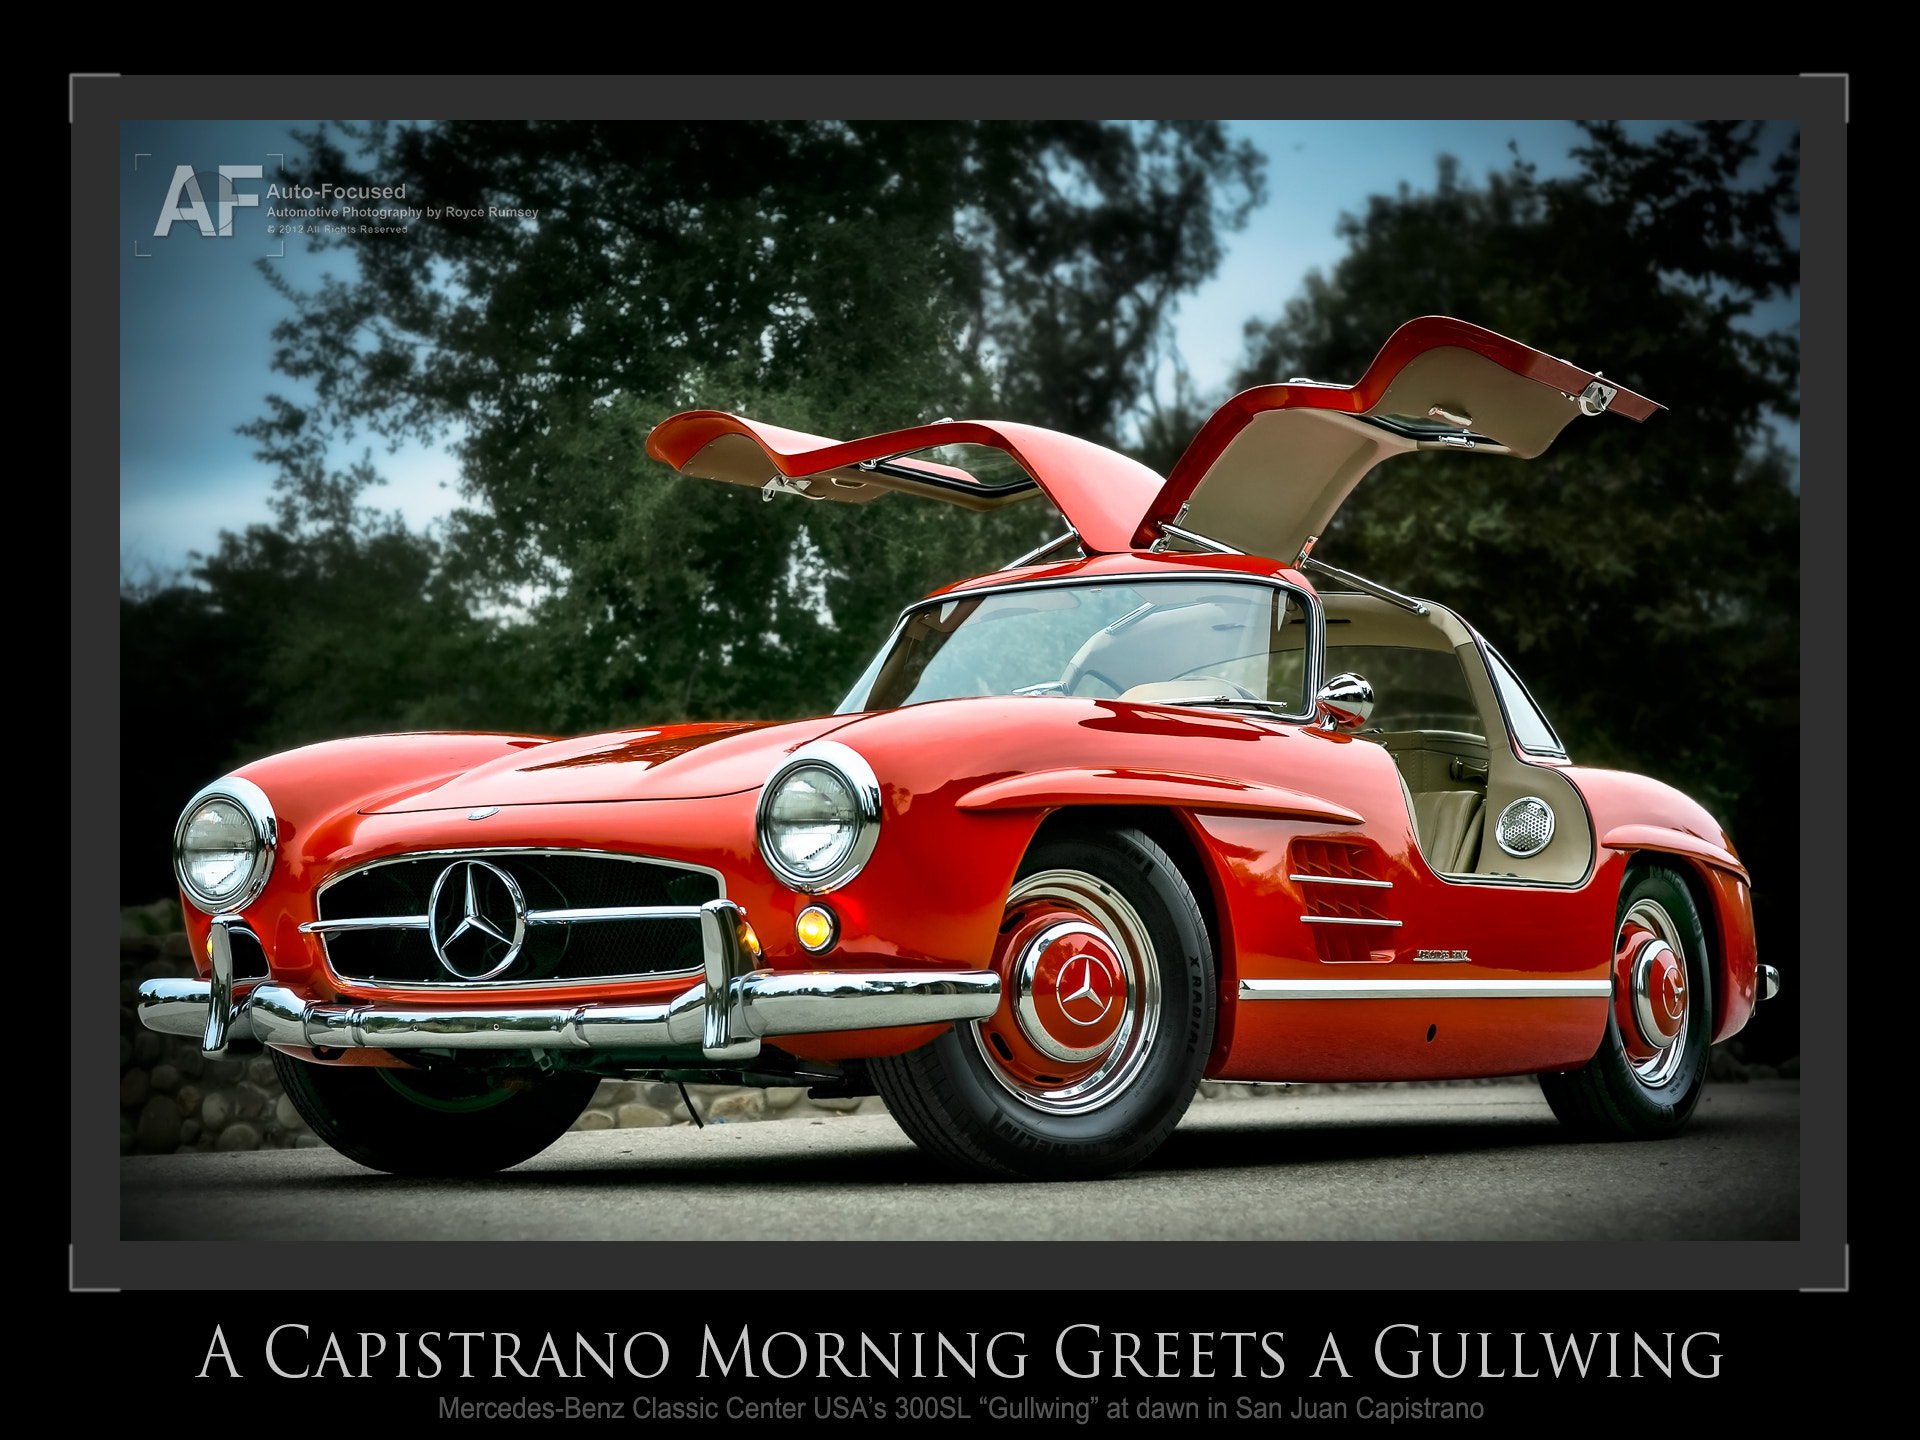 Photograph Another dawn in Capistrano greets a Gullwing by Royce Rumsey on 500px